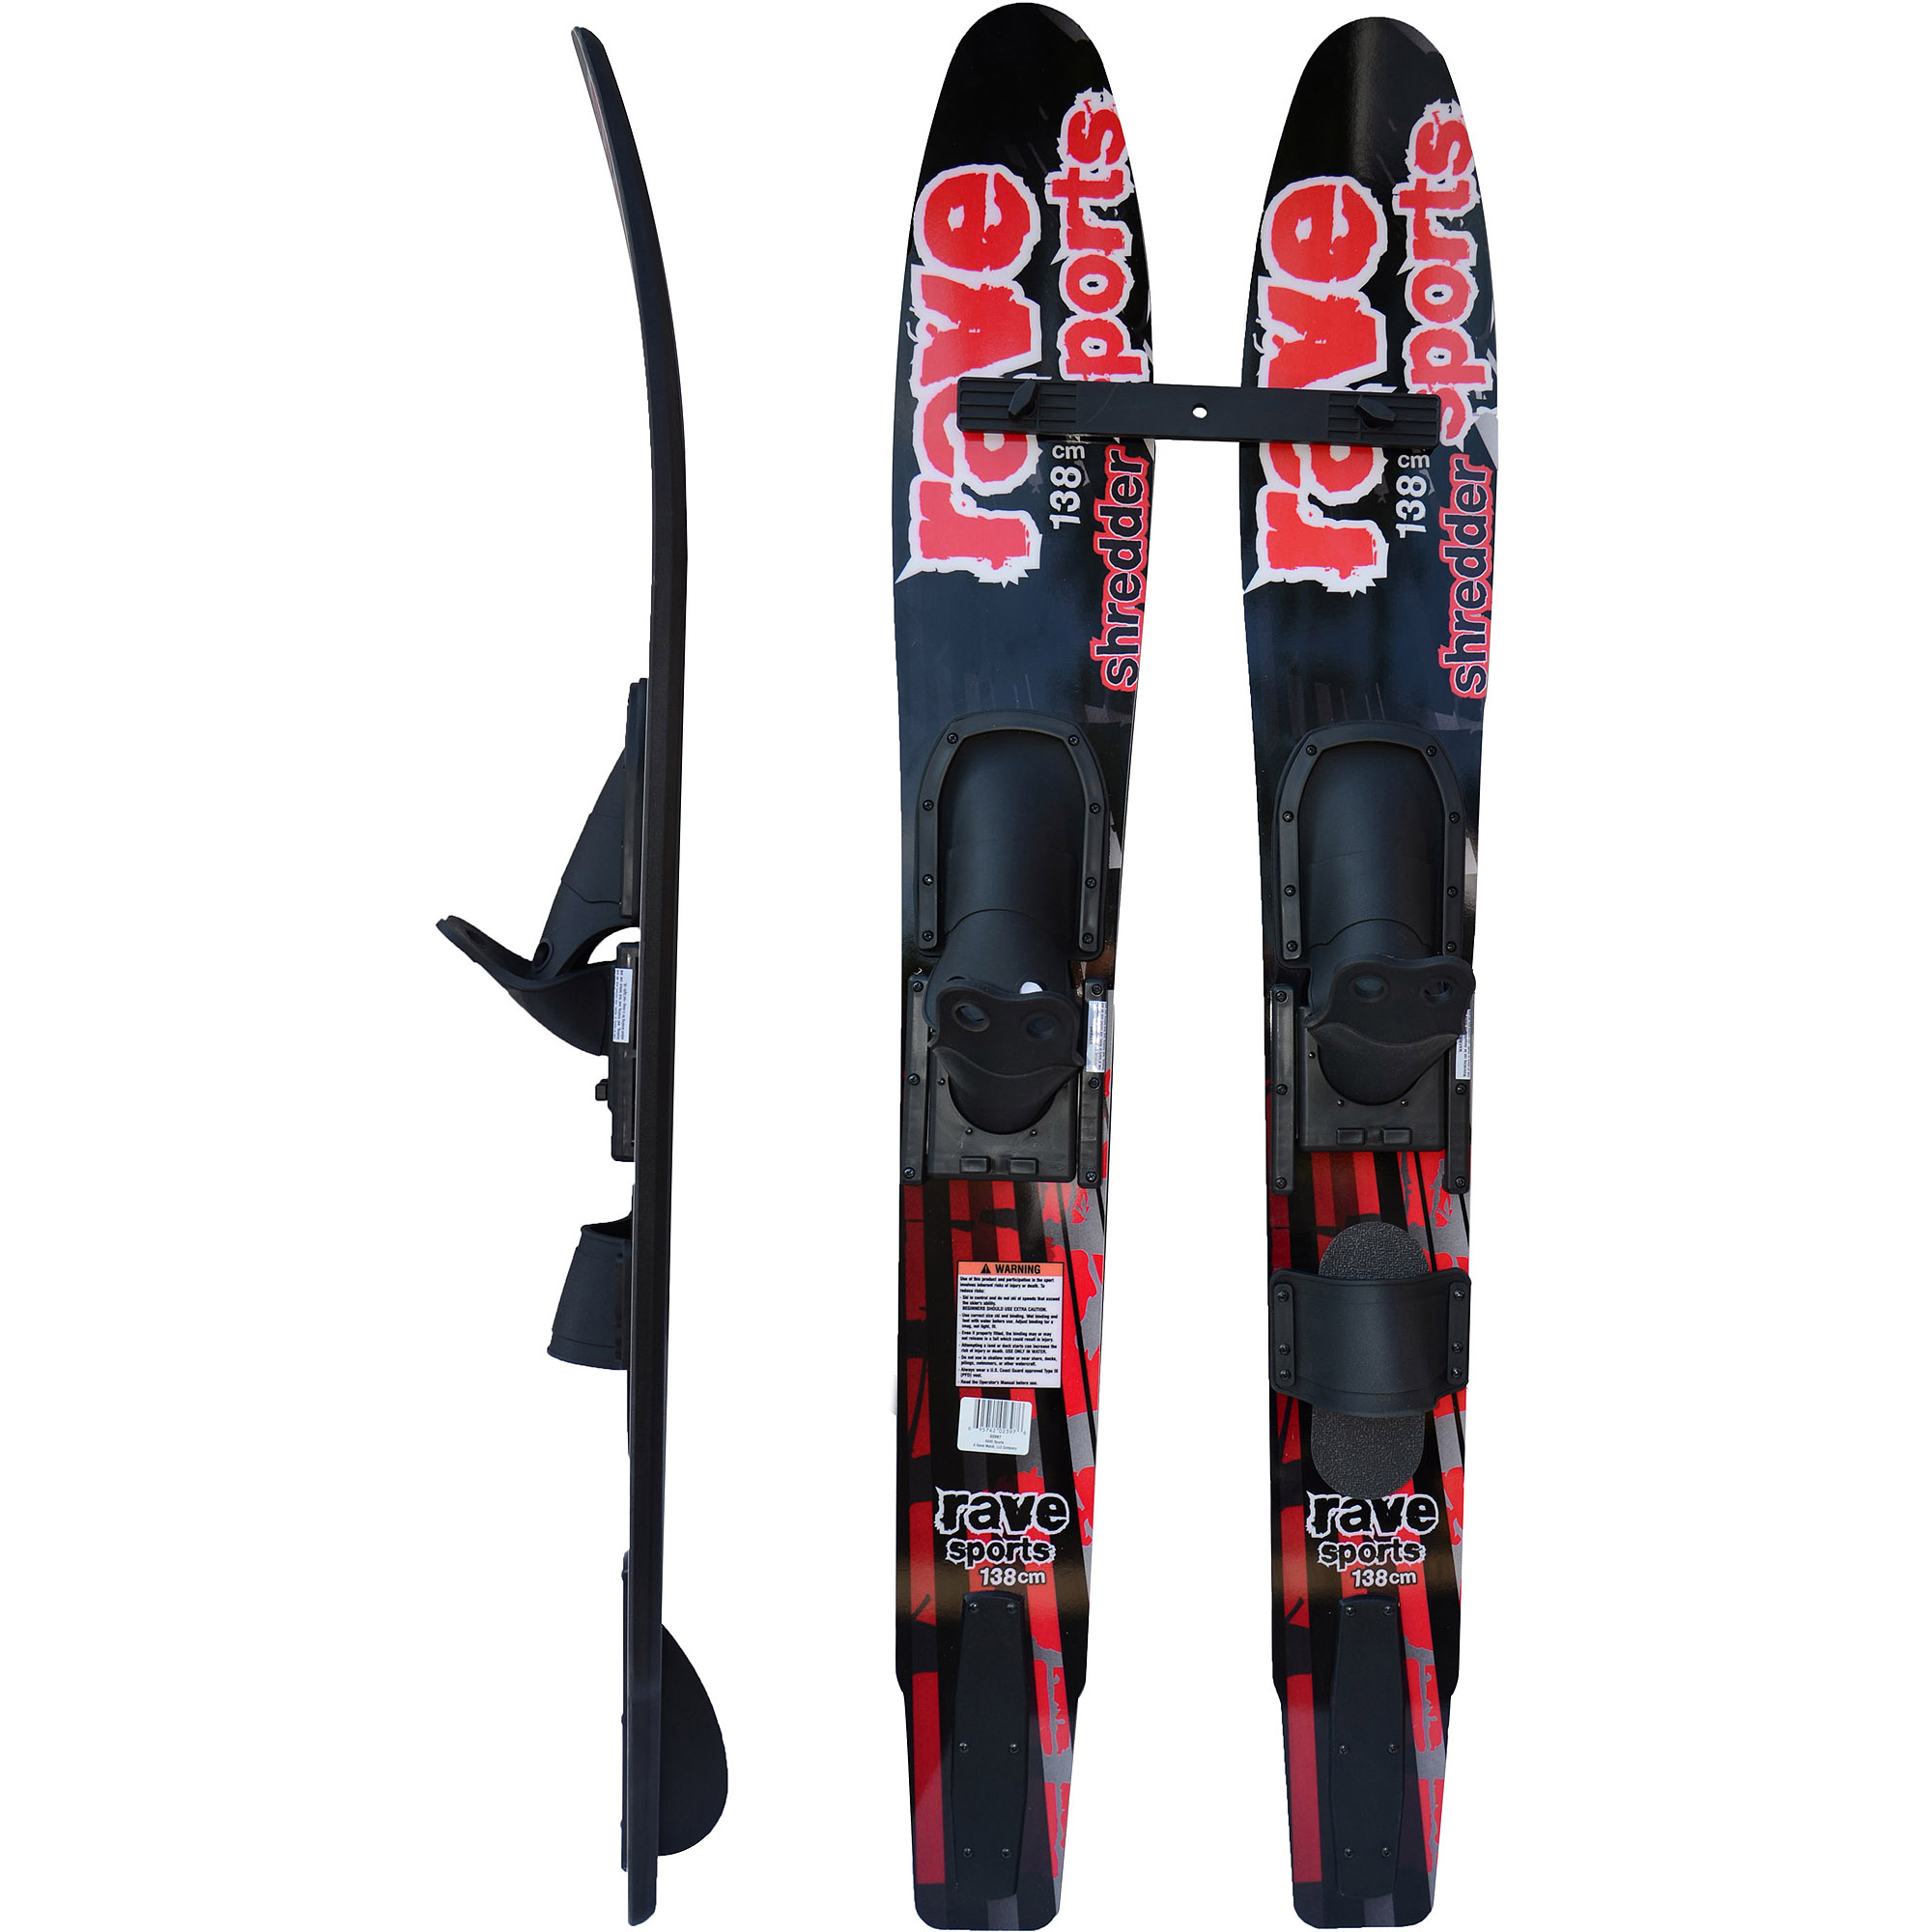 Rave Sports Youth Jr. Shredder Combo 138 cm Water Skis by Rave Sports